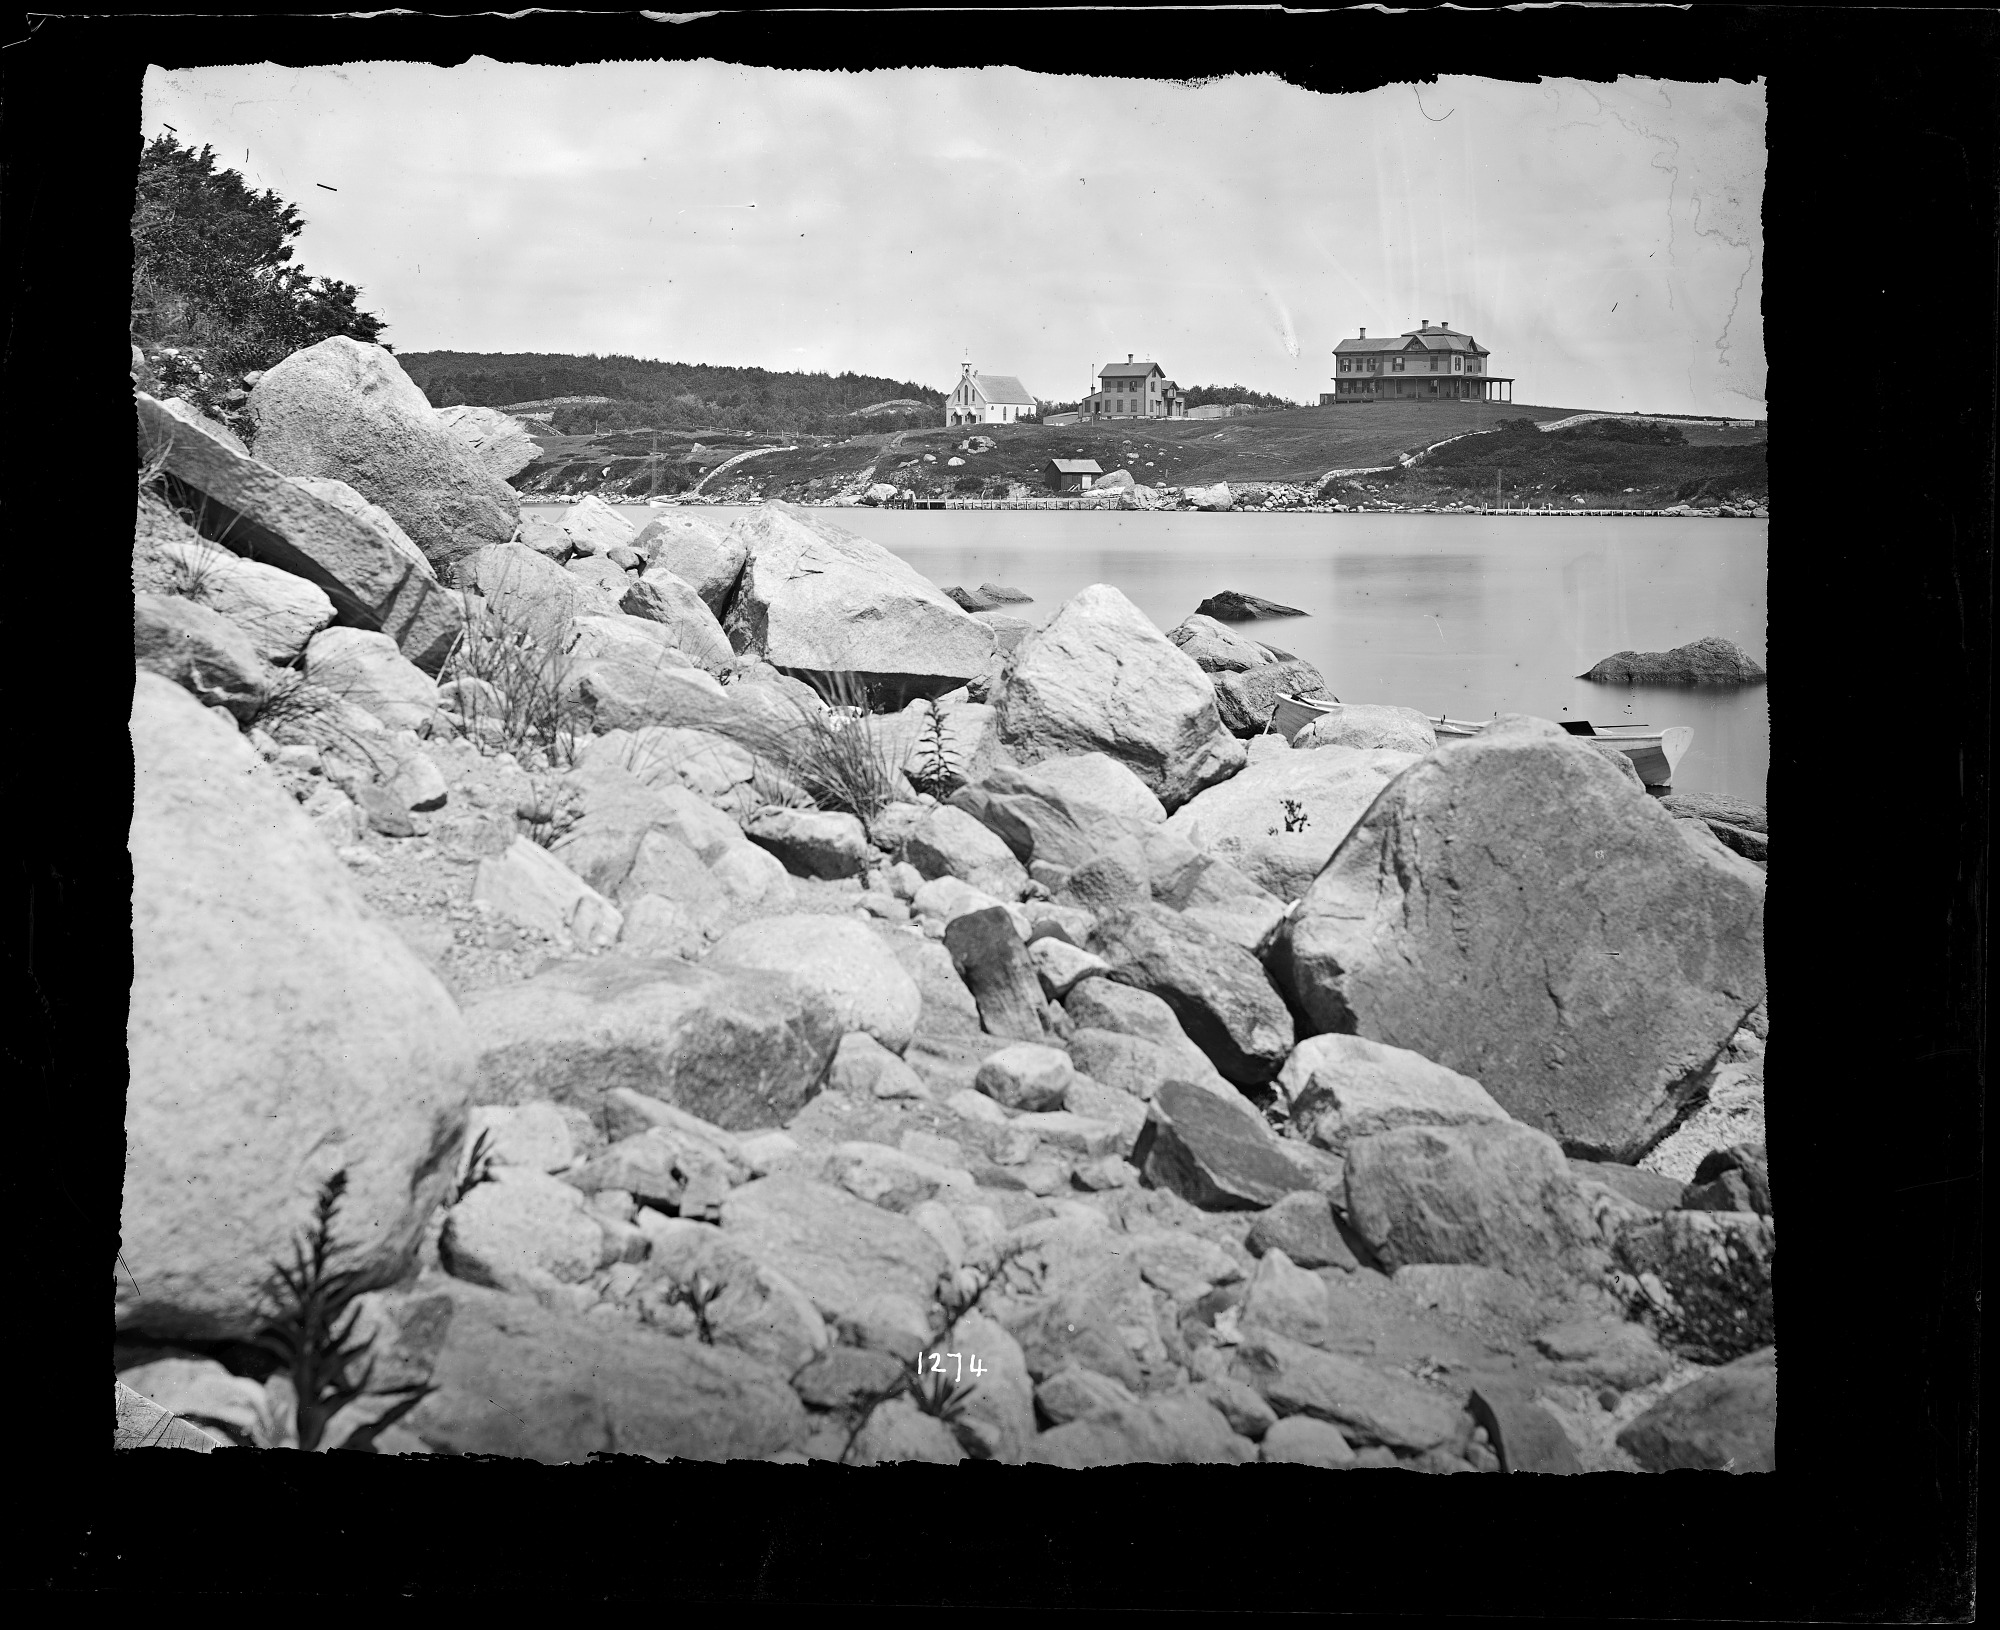 Woods Hole, Massachusetts, 1870, Smithsonian Institution Archives, SIA Acc. 11-006 [MAH-1274].